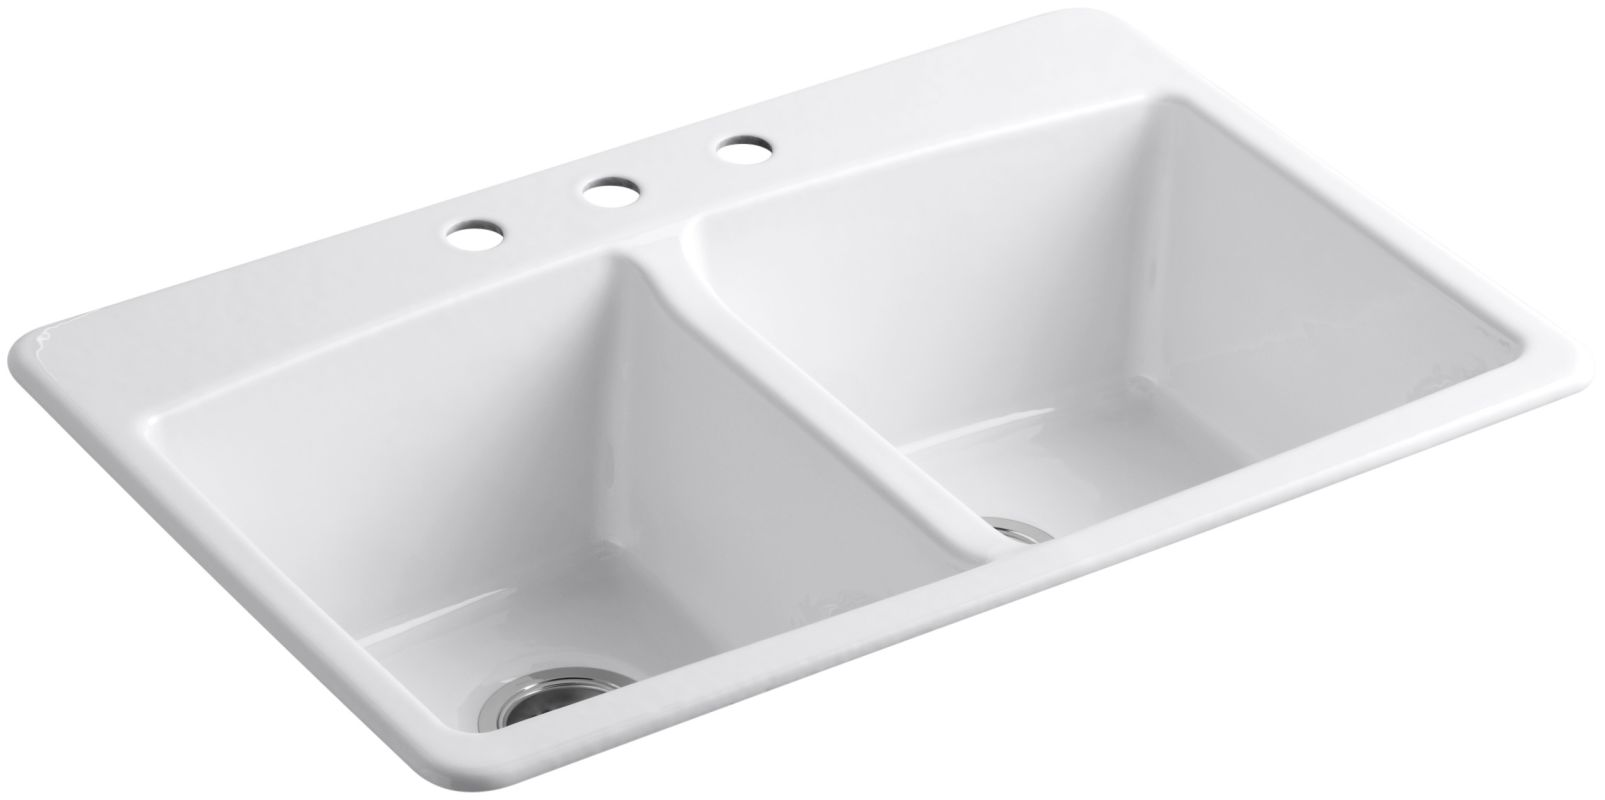 Kohler K 5846 3 0 White Brookfield 33 Quot Double Basin Top